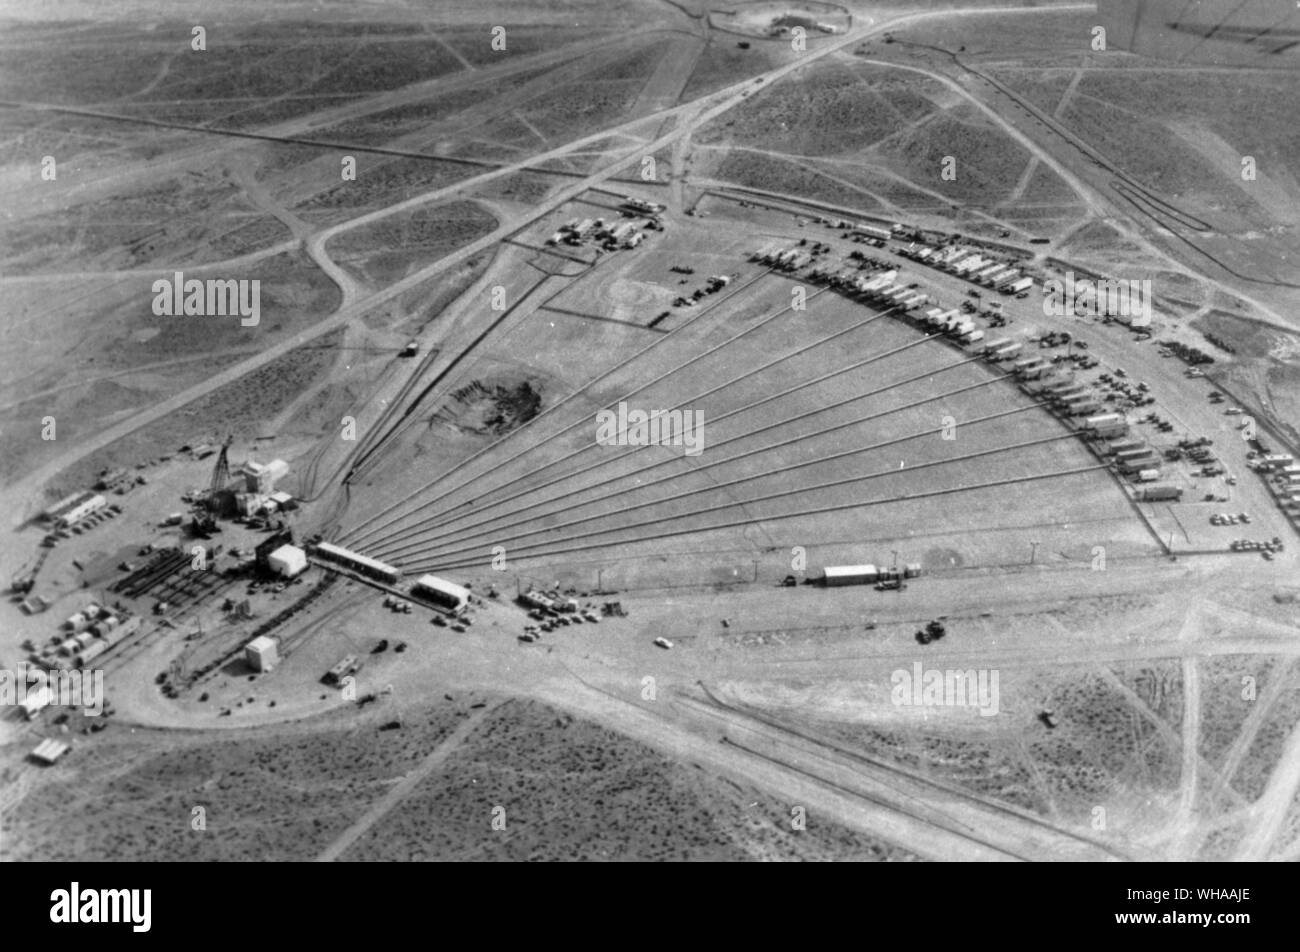 The Aec Nuclear Test Site In Nevada The Nevada Test Site Nts Is A Remote Site